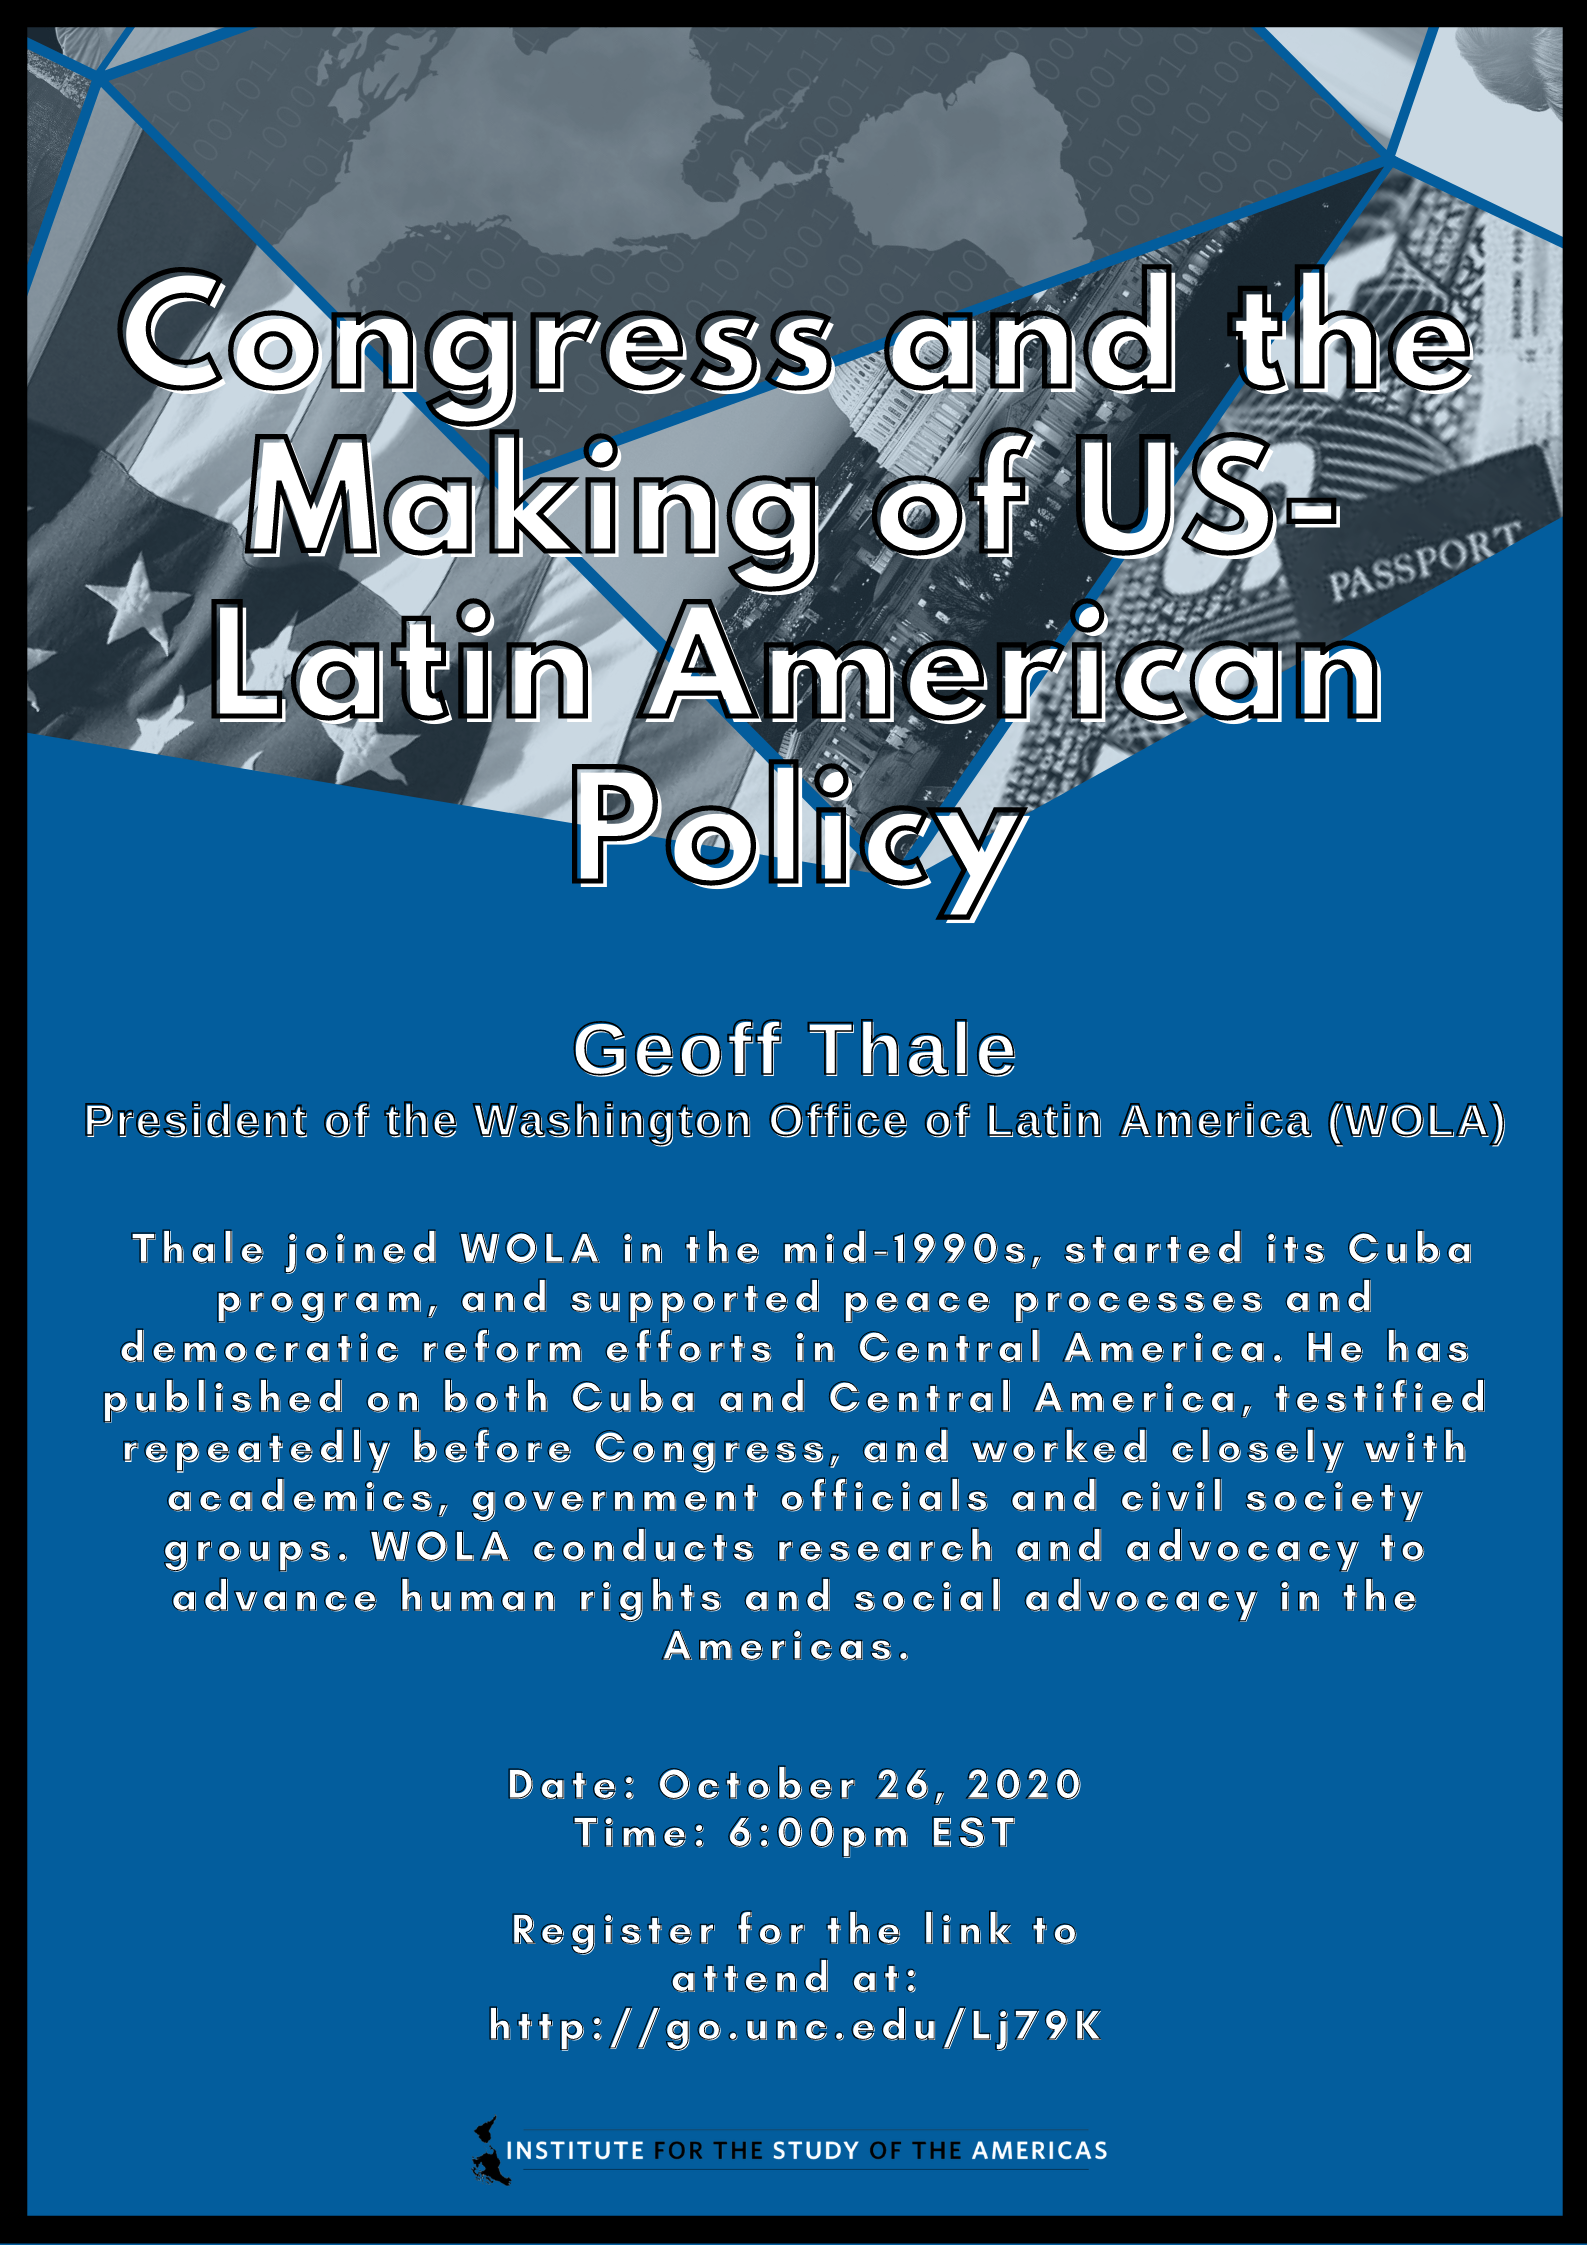 Congress and the Making of U.S. Policy on Latin America Policy